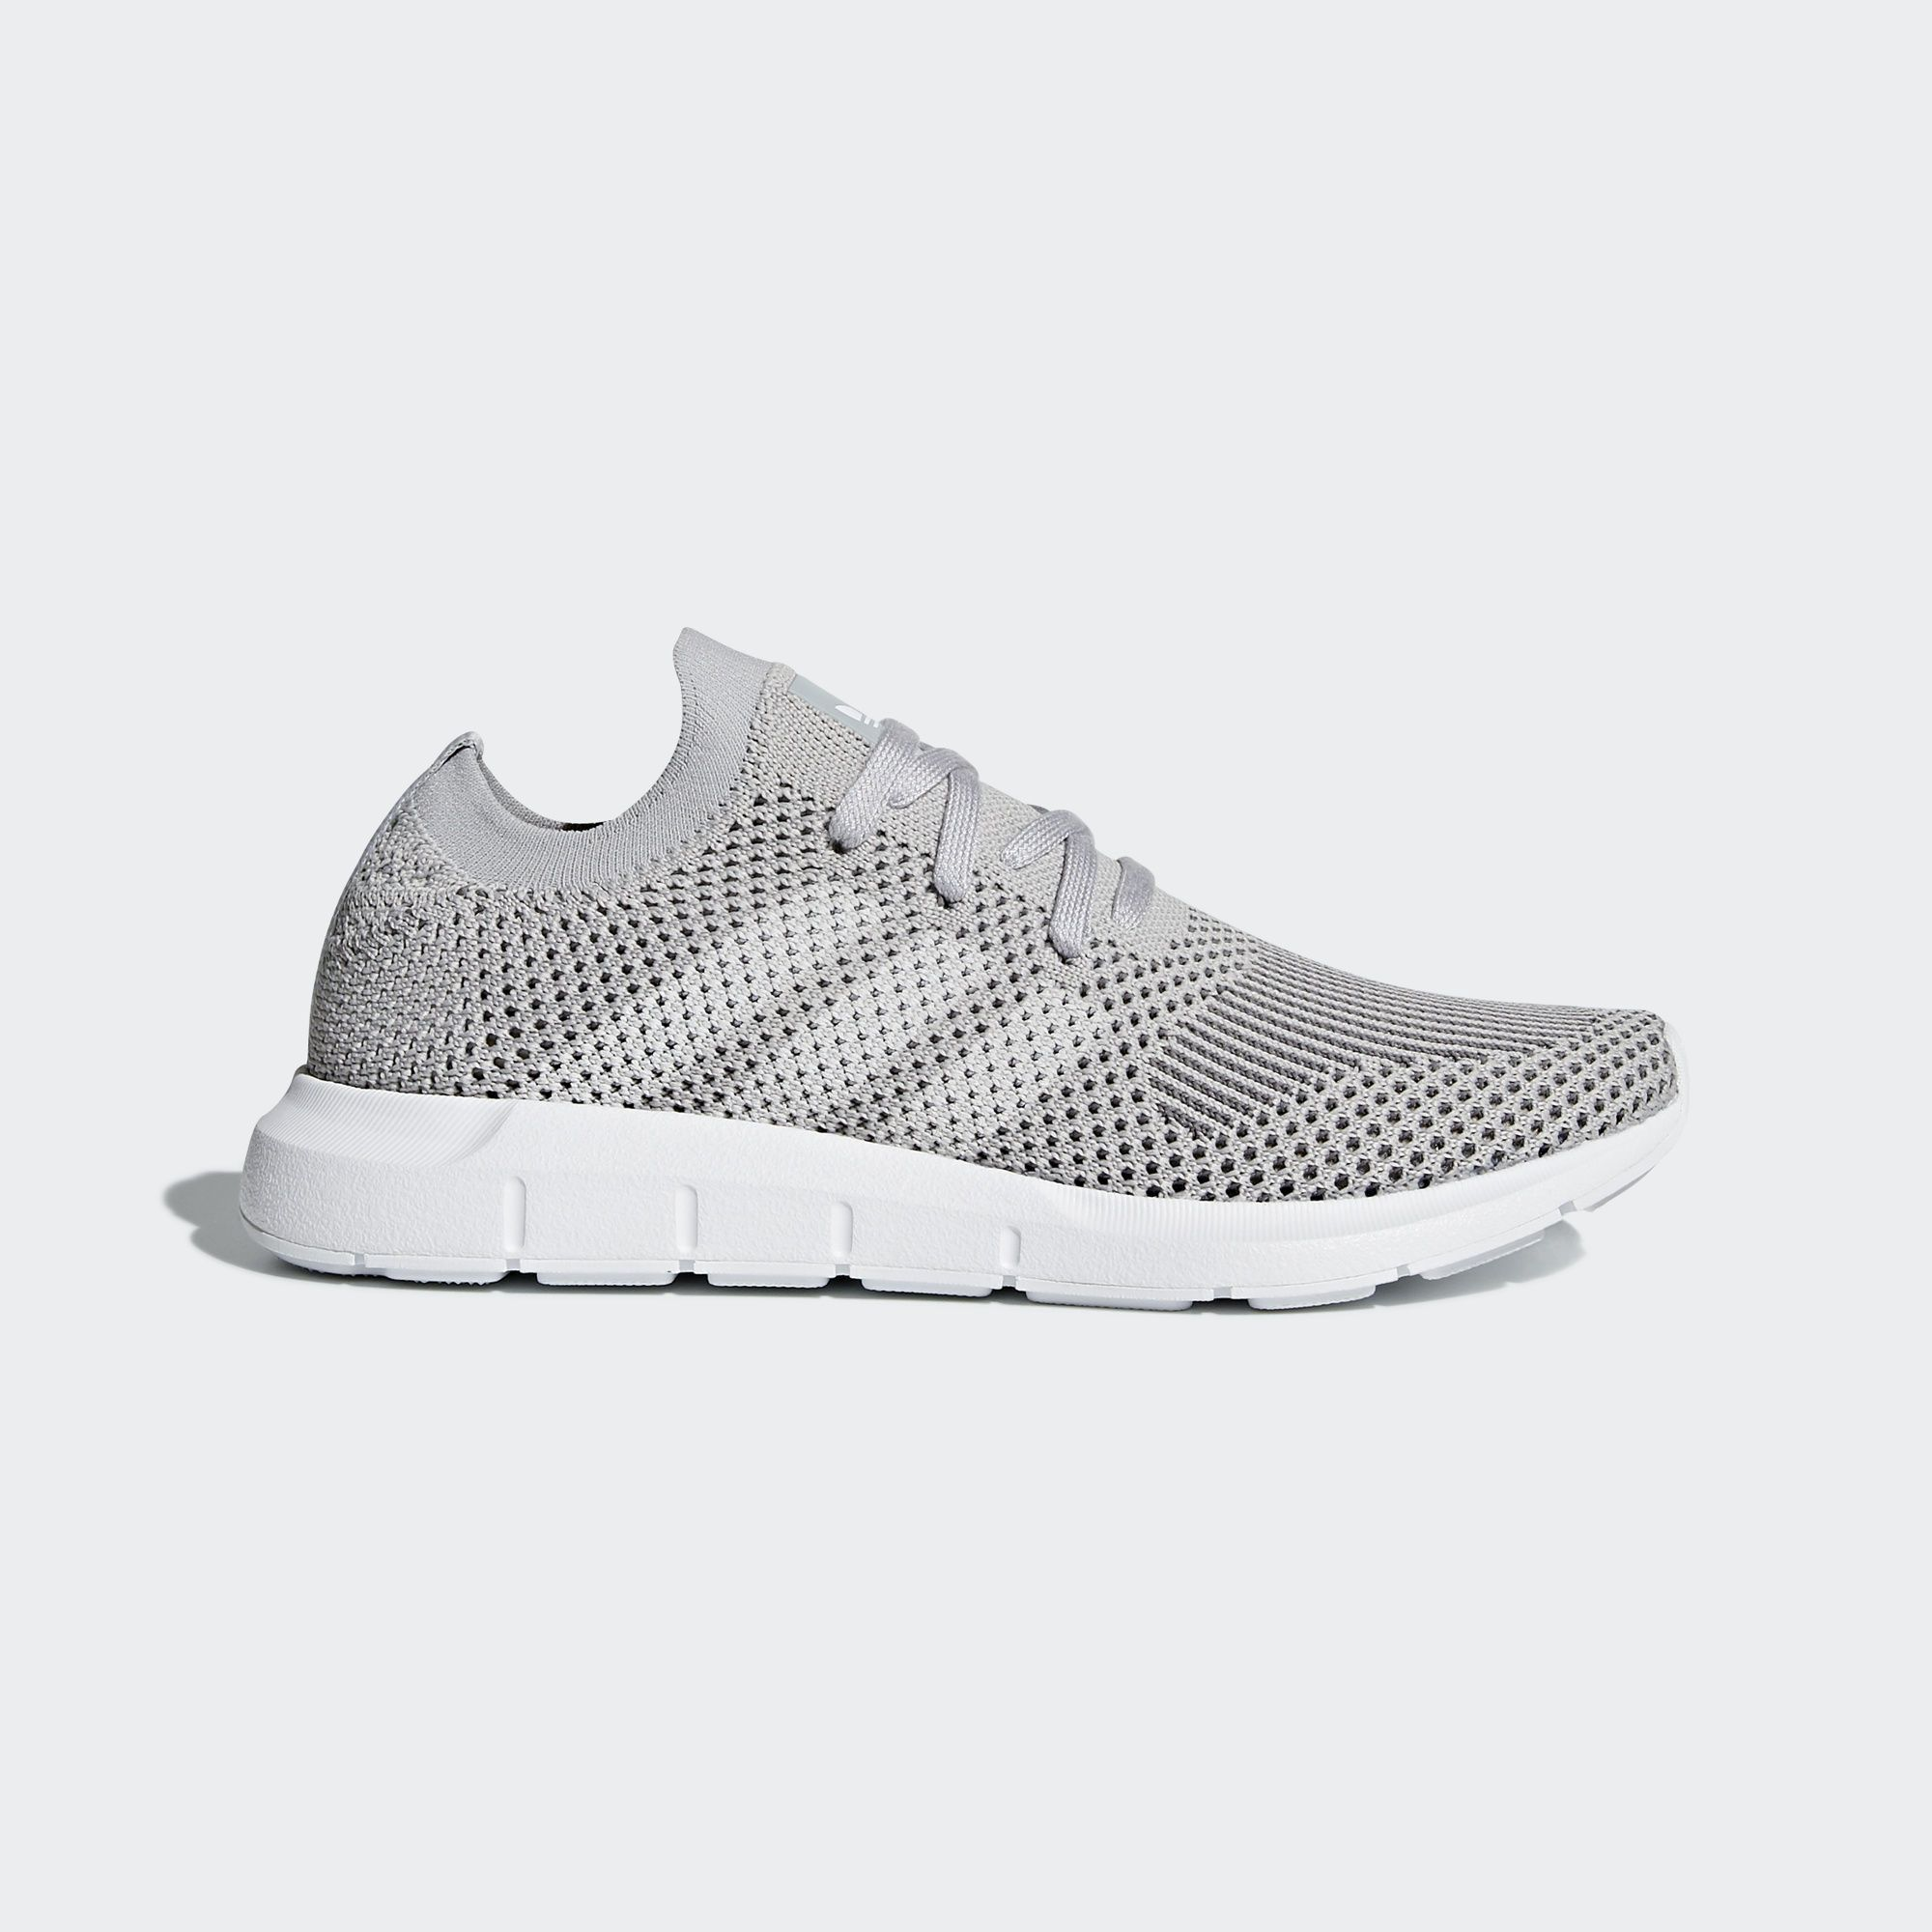 colegio Además Bibliografía  Women's Swift Run Primeknit Shoes | Adidas women, Adidas online, Grey adidas